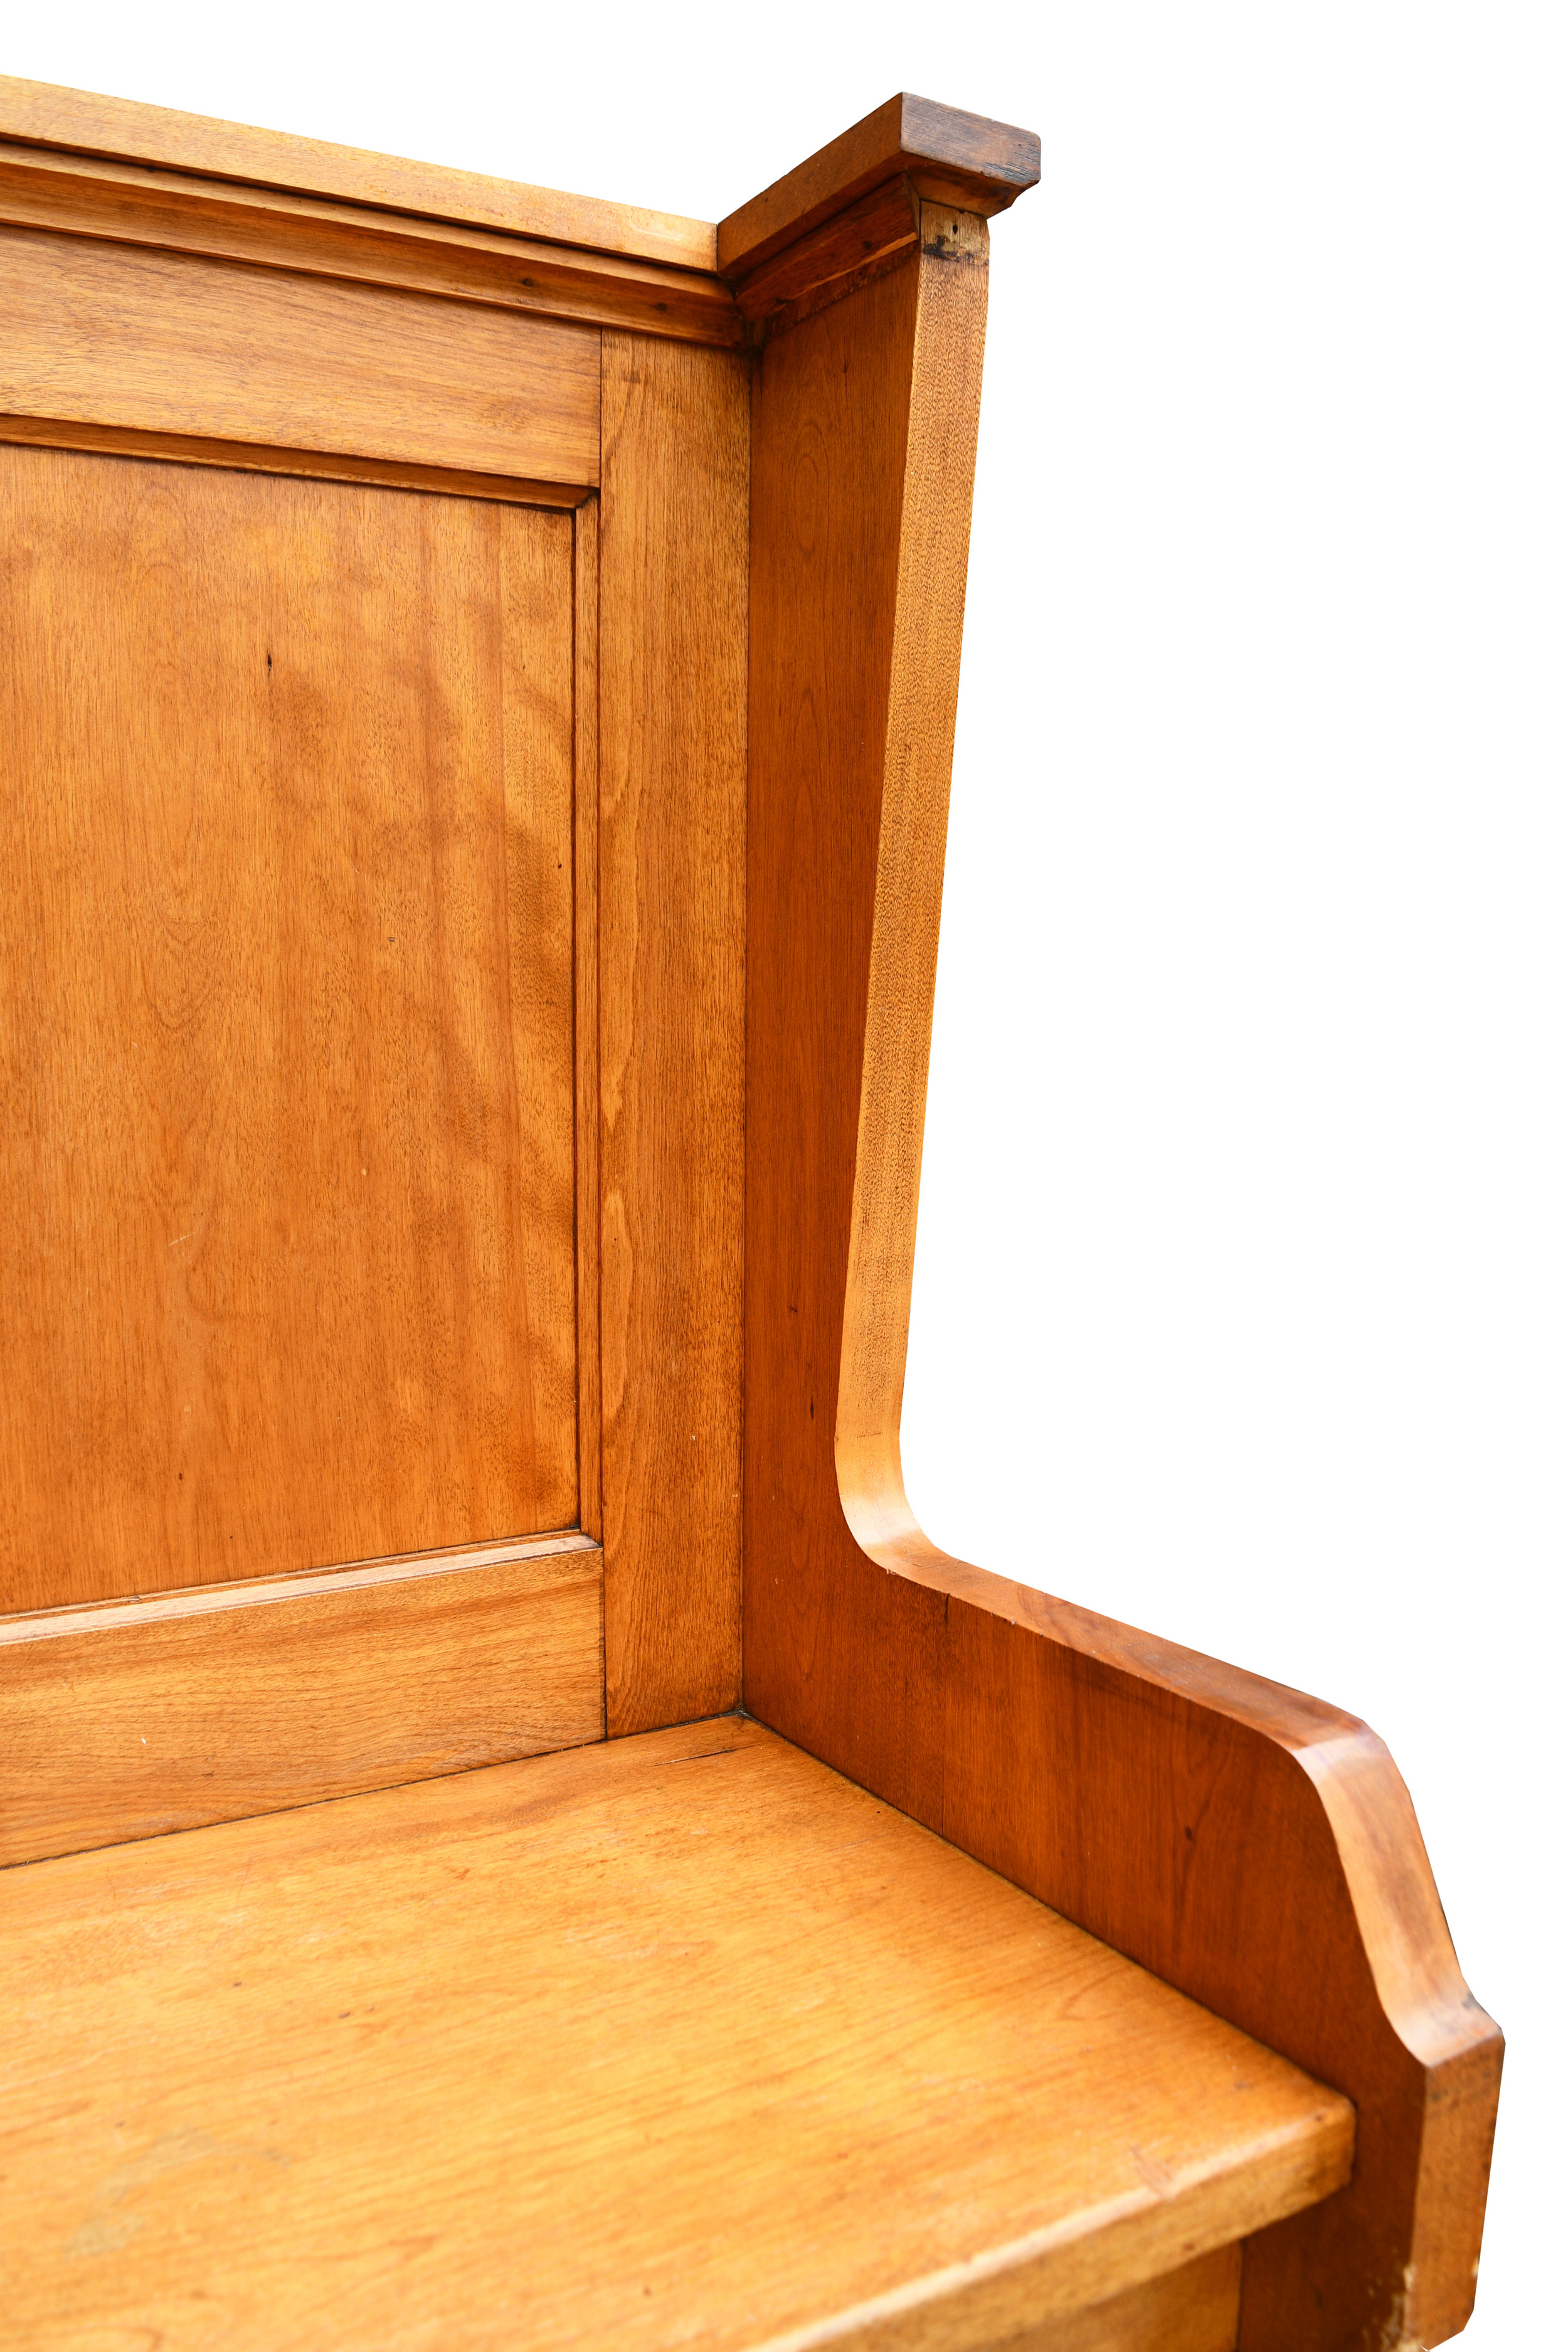 48337-maple-booth-bench-close-up-side.jpg